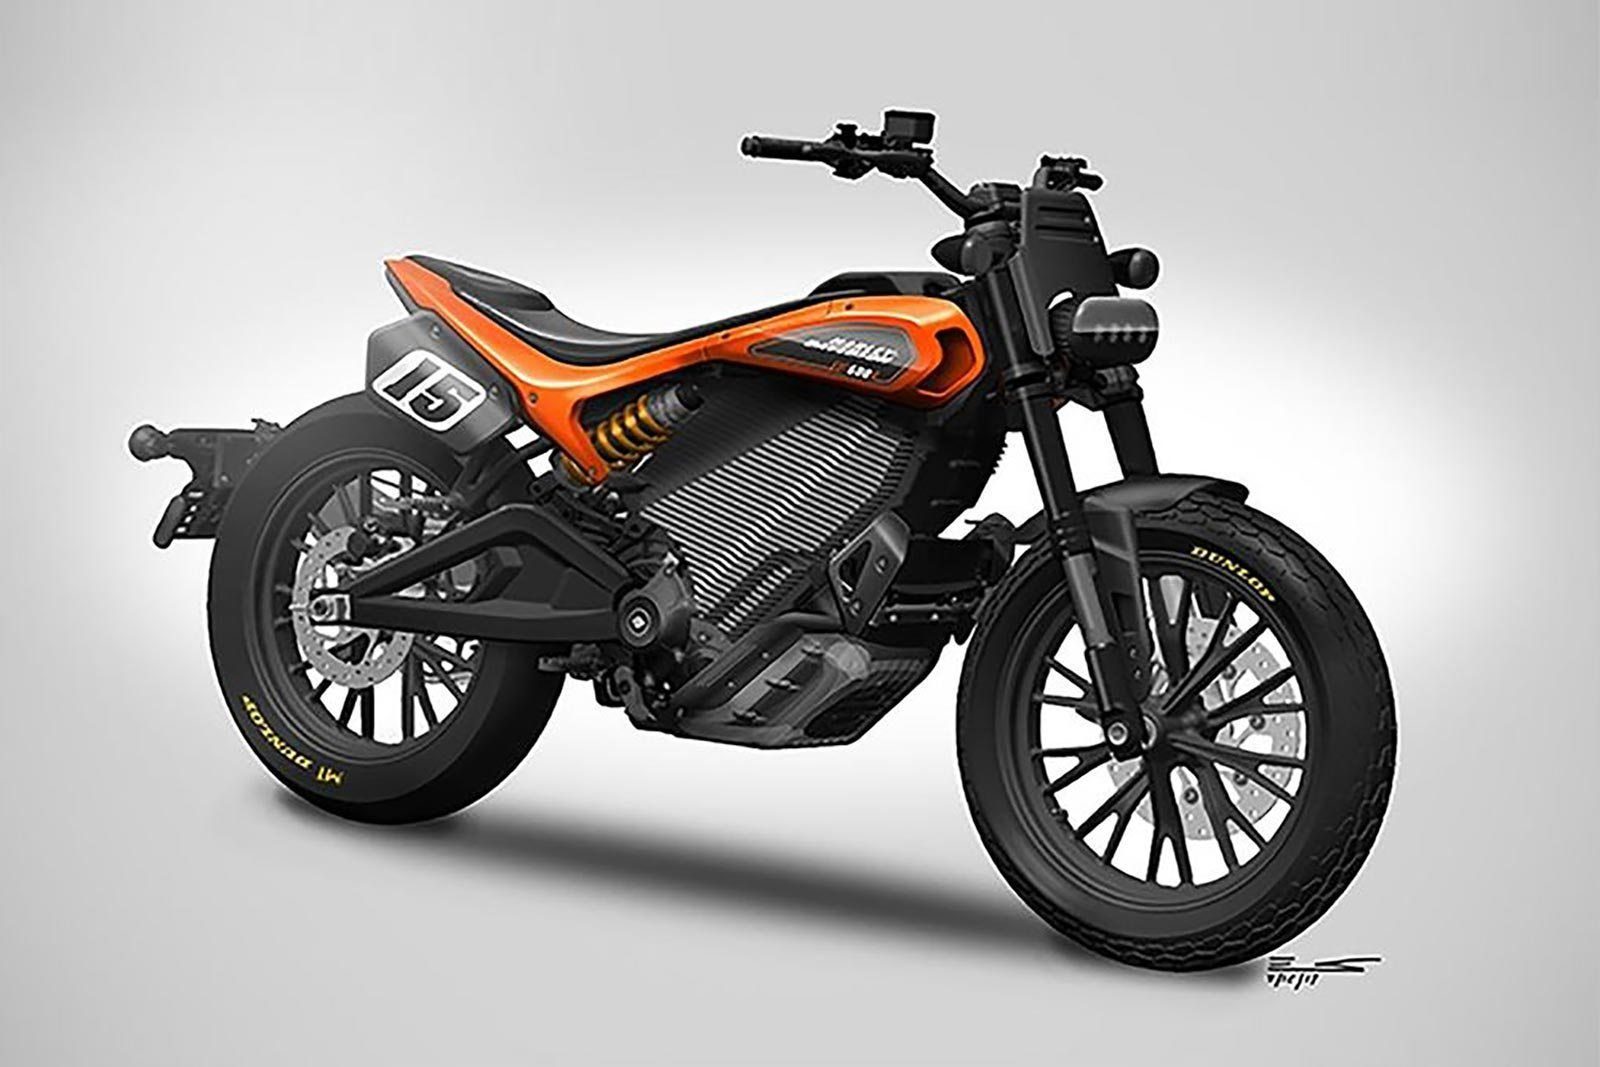 Harley Davidson Just Showed Us A Strong Intent Of Their Future Electric Street Tracker In 2020 Electric Motorcycle Motorcycle Harley Harley Davidson Bikes